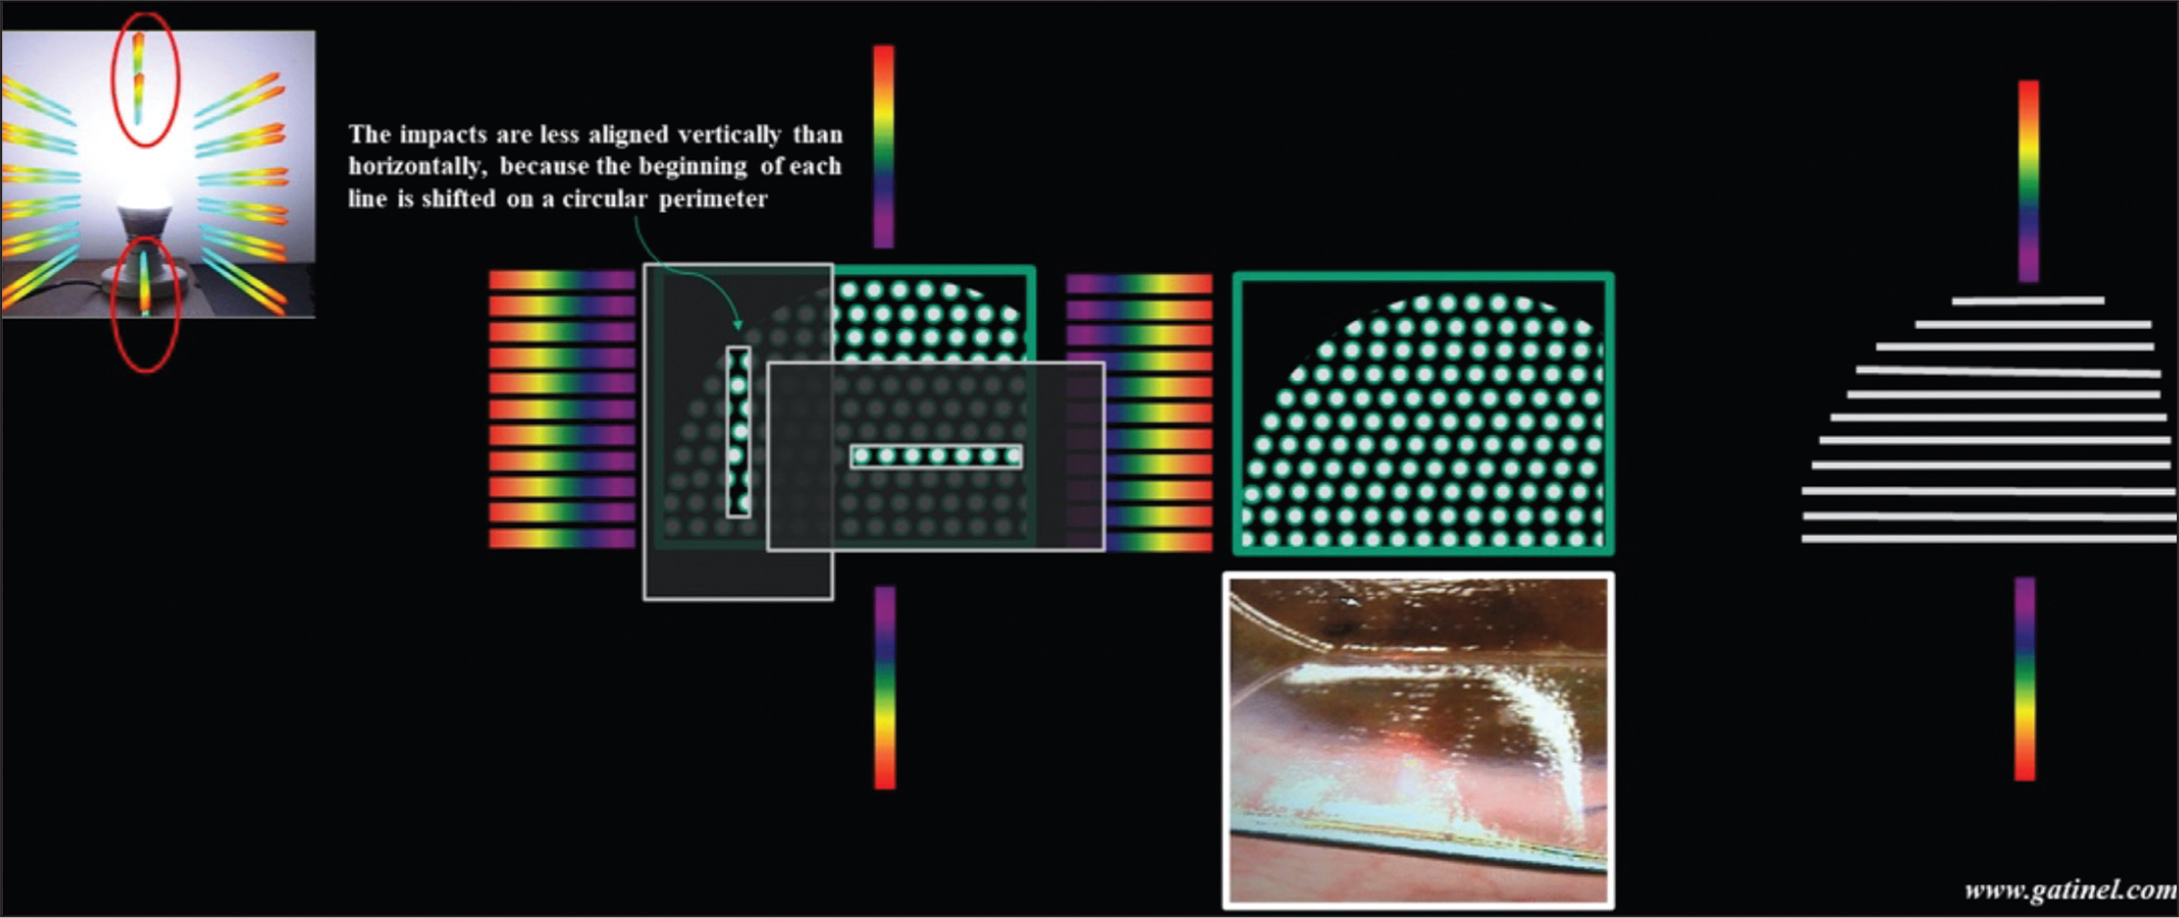 Schematic representations of the cause of vertical rainbow glare (image provided courtesy of Damien Gatinel, MD, PhD). Although the regular spacing of the horizontal femtosecond laser impacts cause the horizontal diffraction and the constitution of the lateral spectral bands, it might be disconcerting to understand how the vertical lines are created because vertical impacts are slightly misaligned because the start of each horizontal line is offset because of the peripheral shift along the circular shape of the flap. This is supposedly due to the lines created by the parallel spots that simulate small regularly spaced thin diffractive slits, causing the vertical spectral lines.